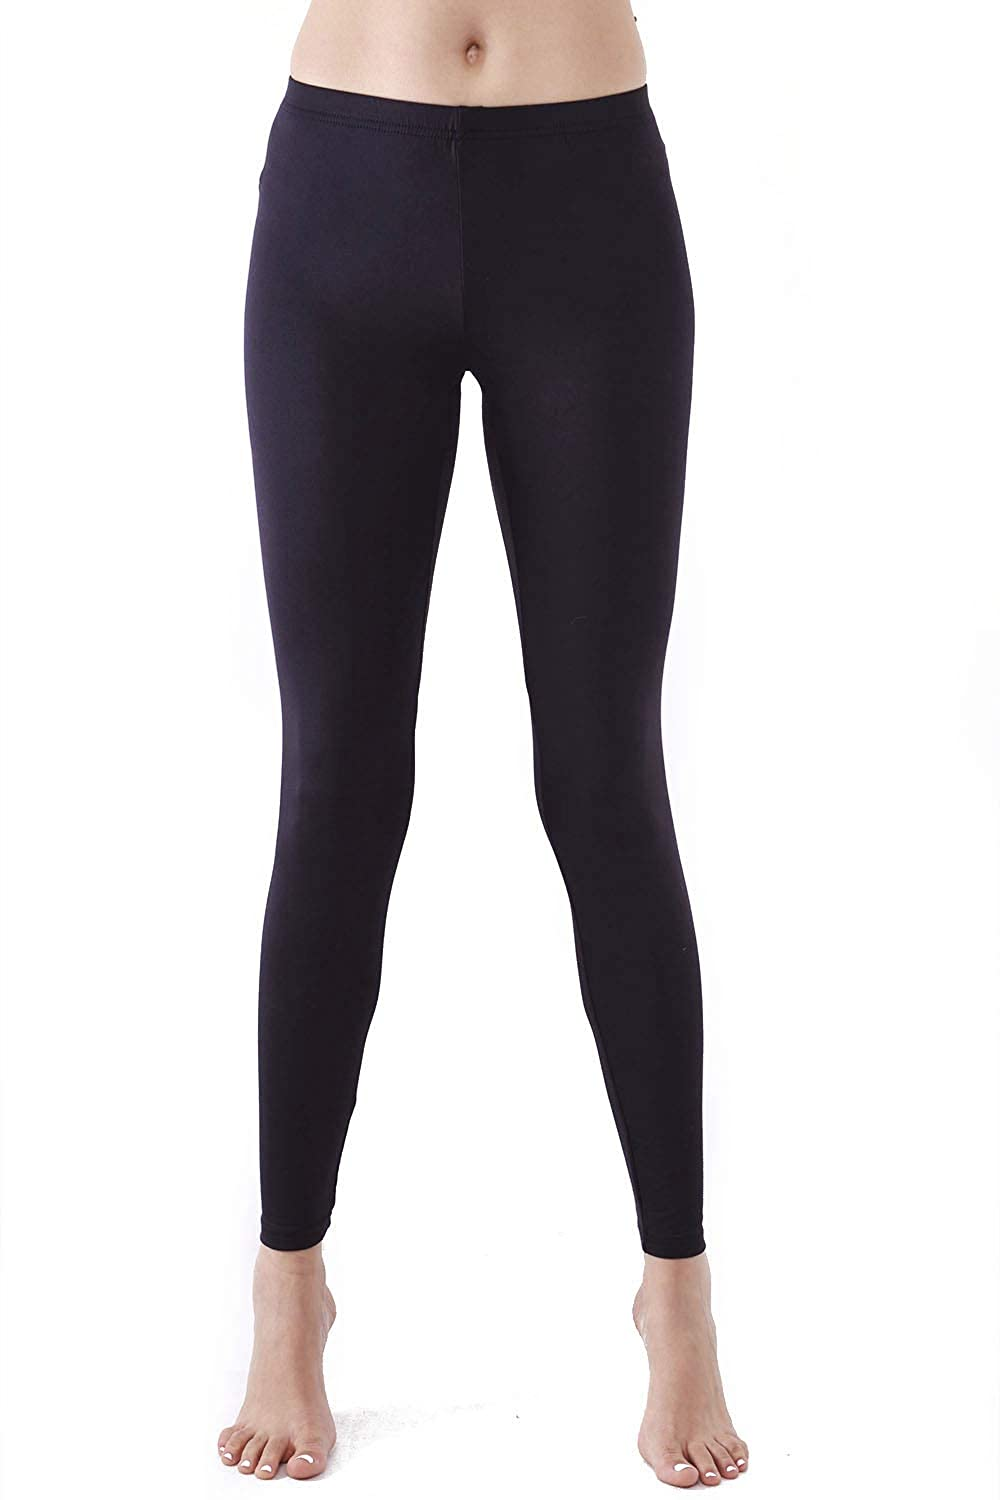 WuhouPro Women's Ultra Soft Microfiber Fleece Thermal Underwear Long Johns